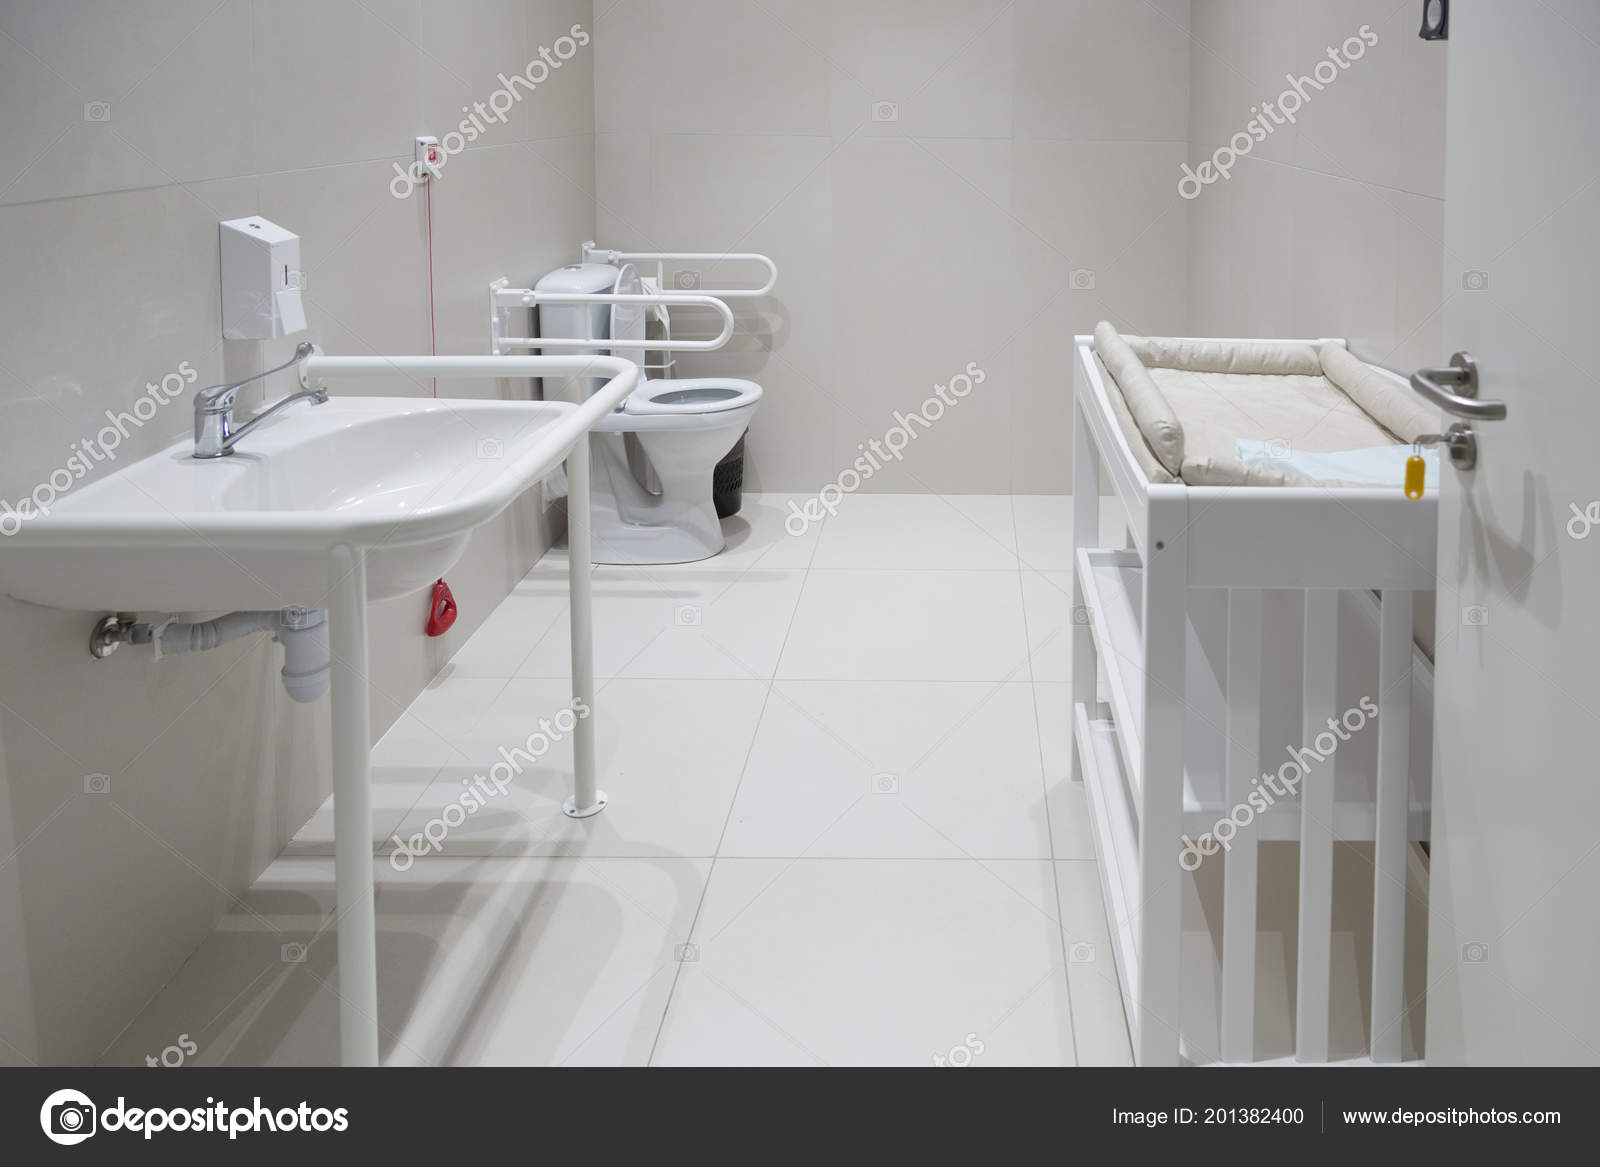 Bathroom Toilet Bowl Disabled Sink Changing Table Babies Stock - Disabled changing table